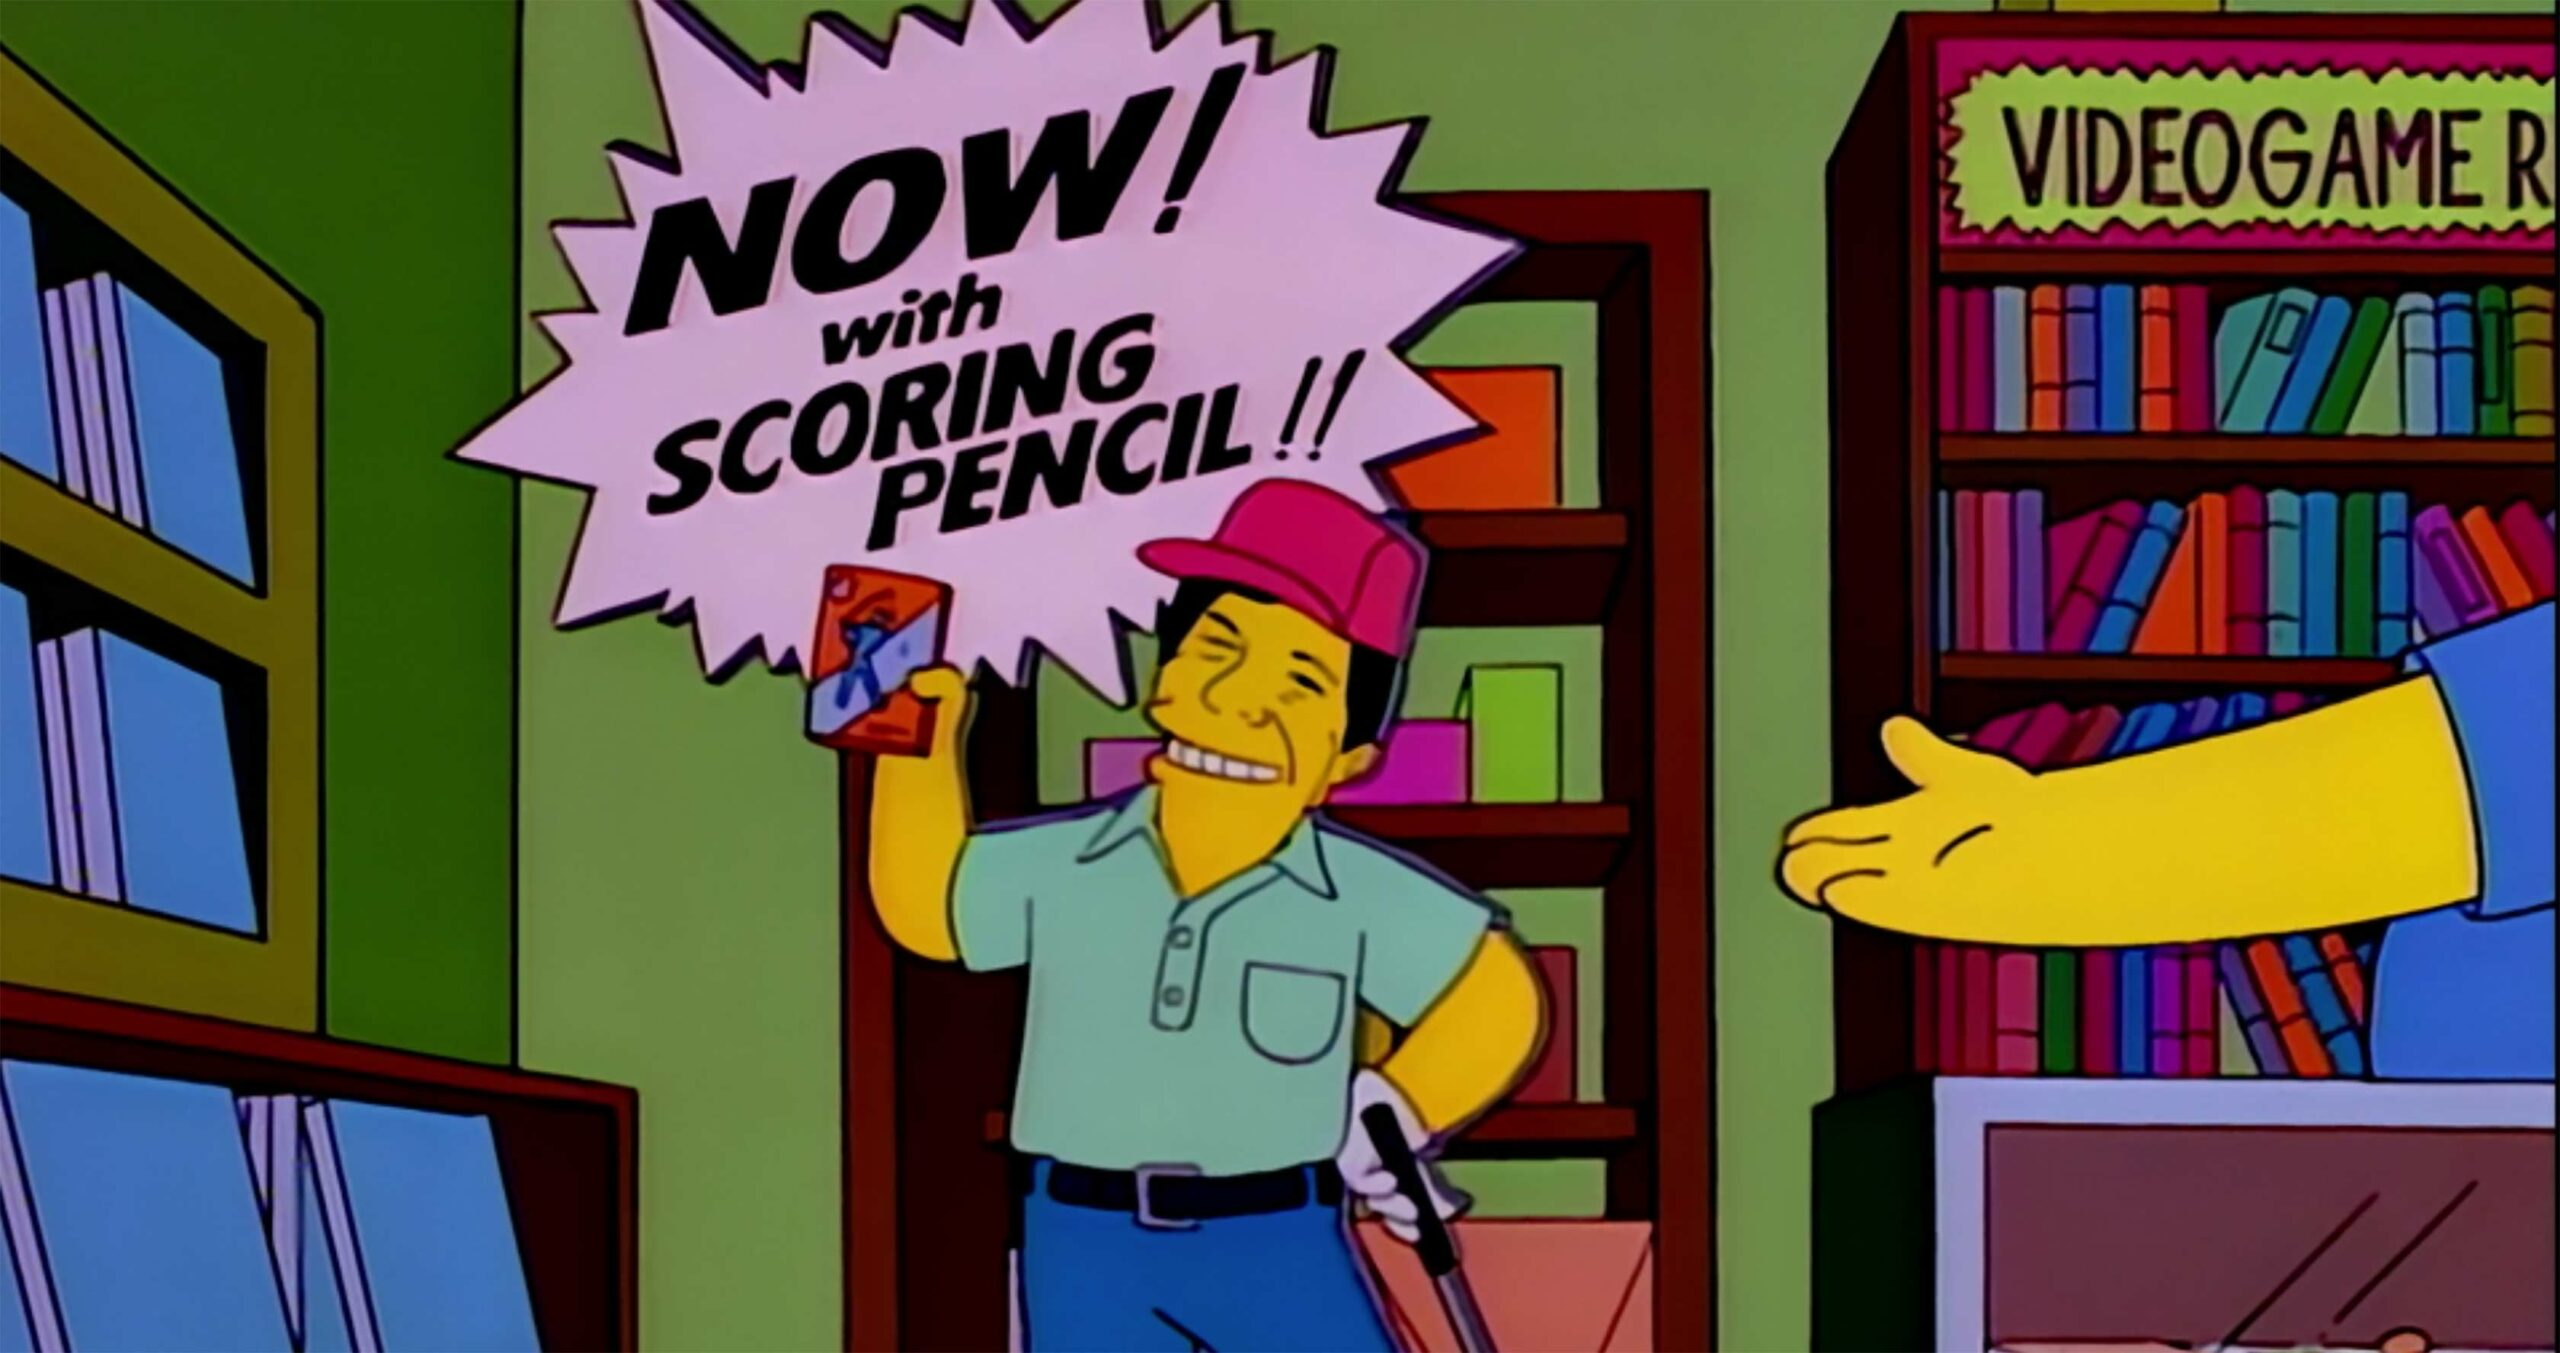 The Simpsons Lee Carvallo's Putting Challenge